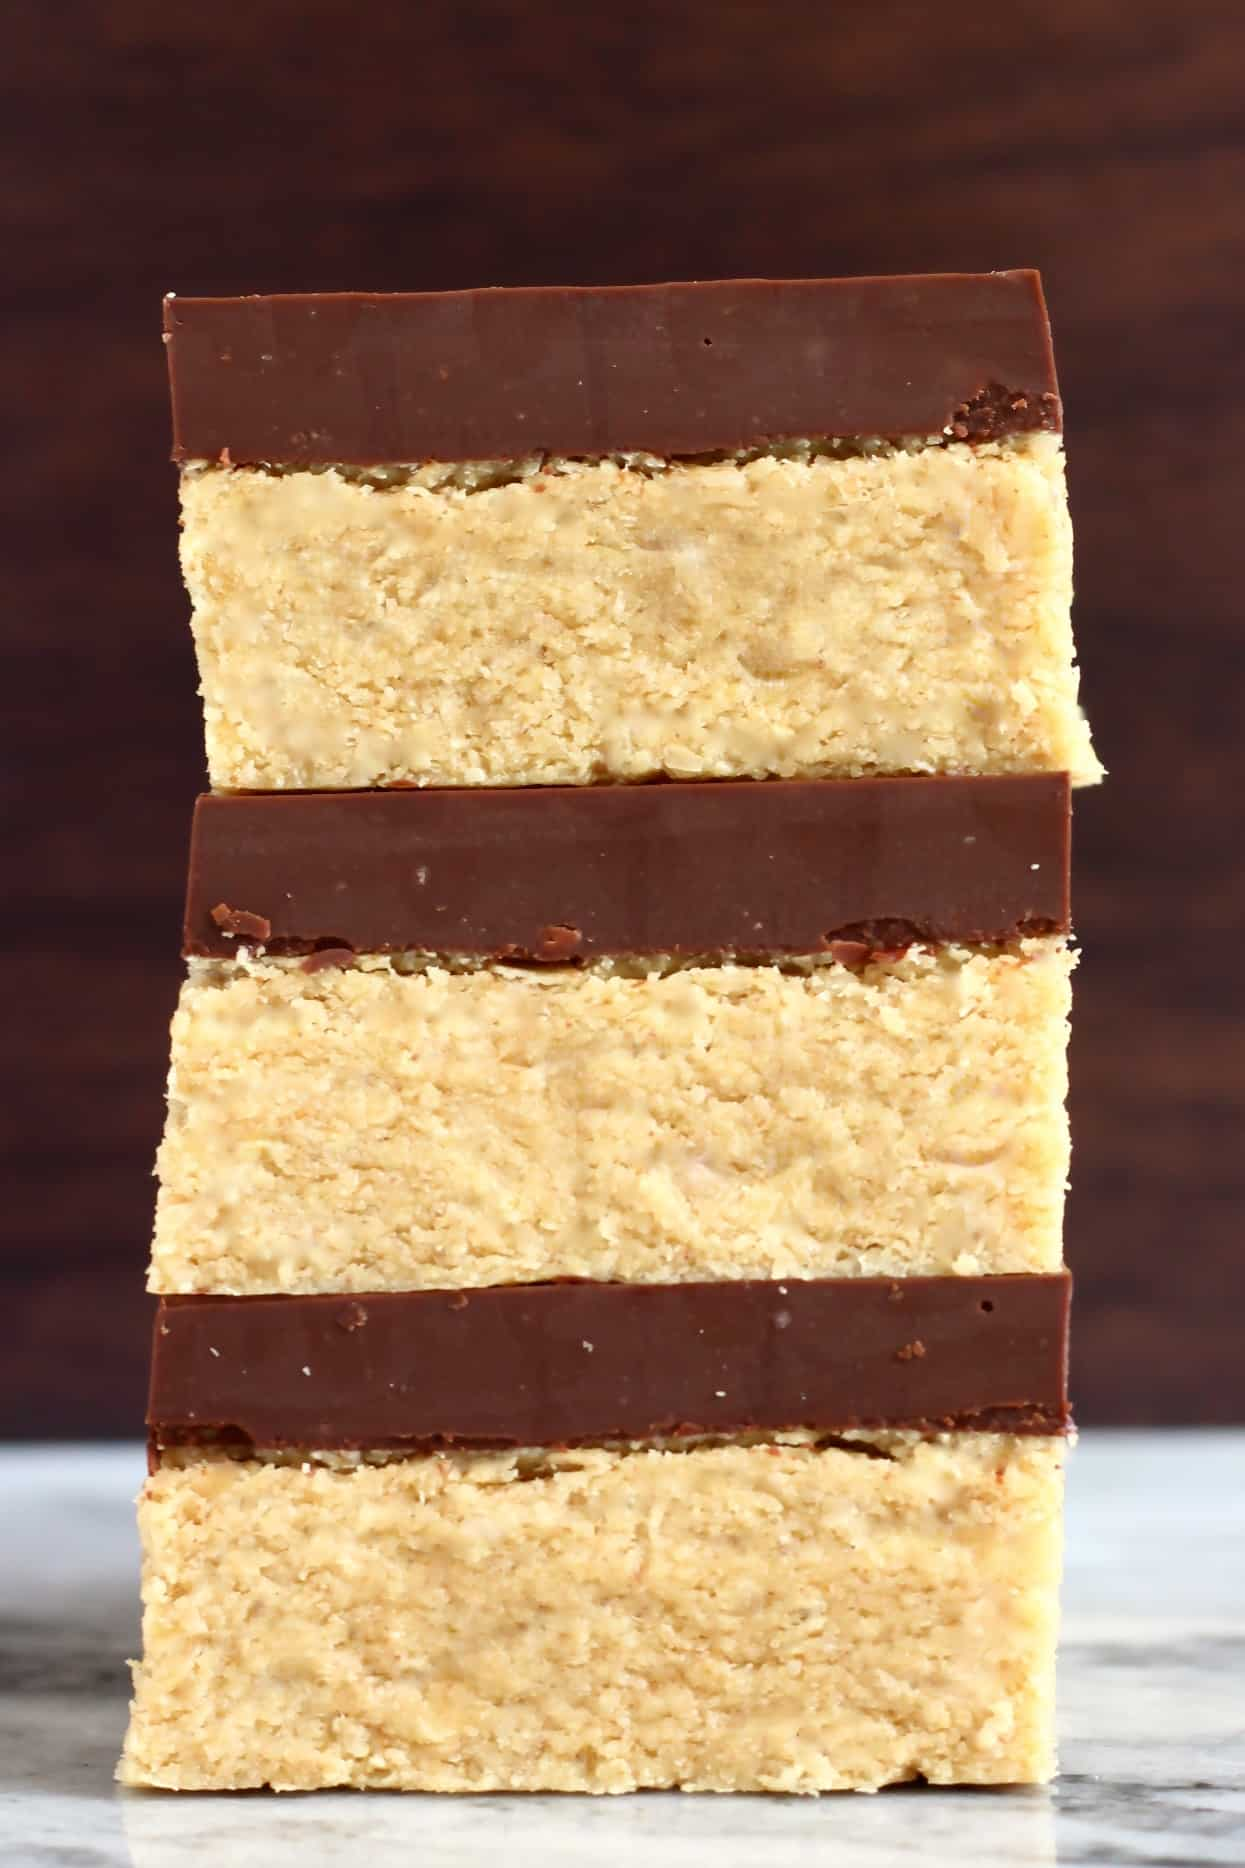 A stack of three chocolate peanut butter bars